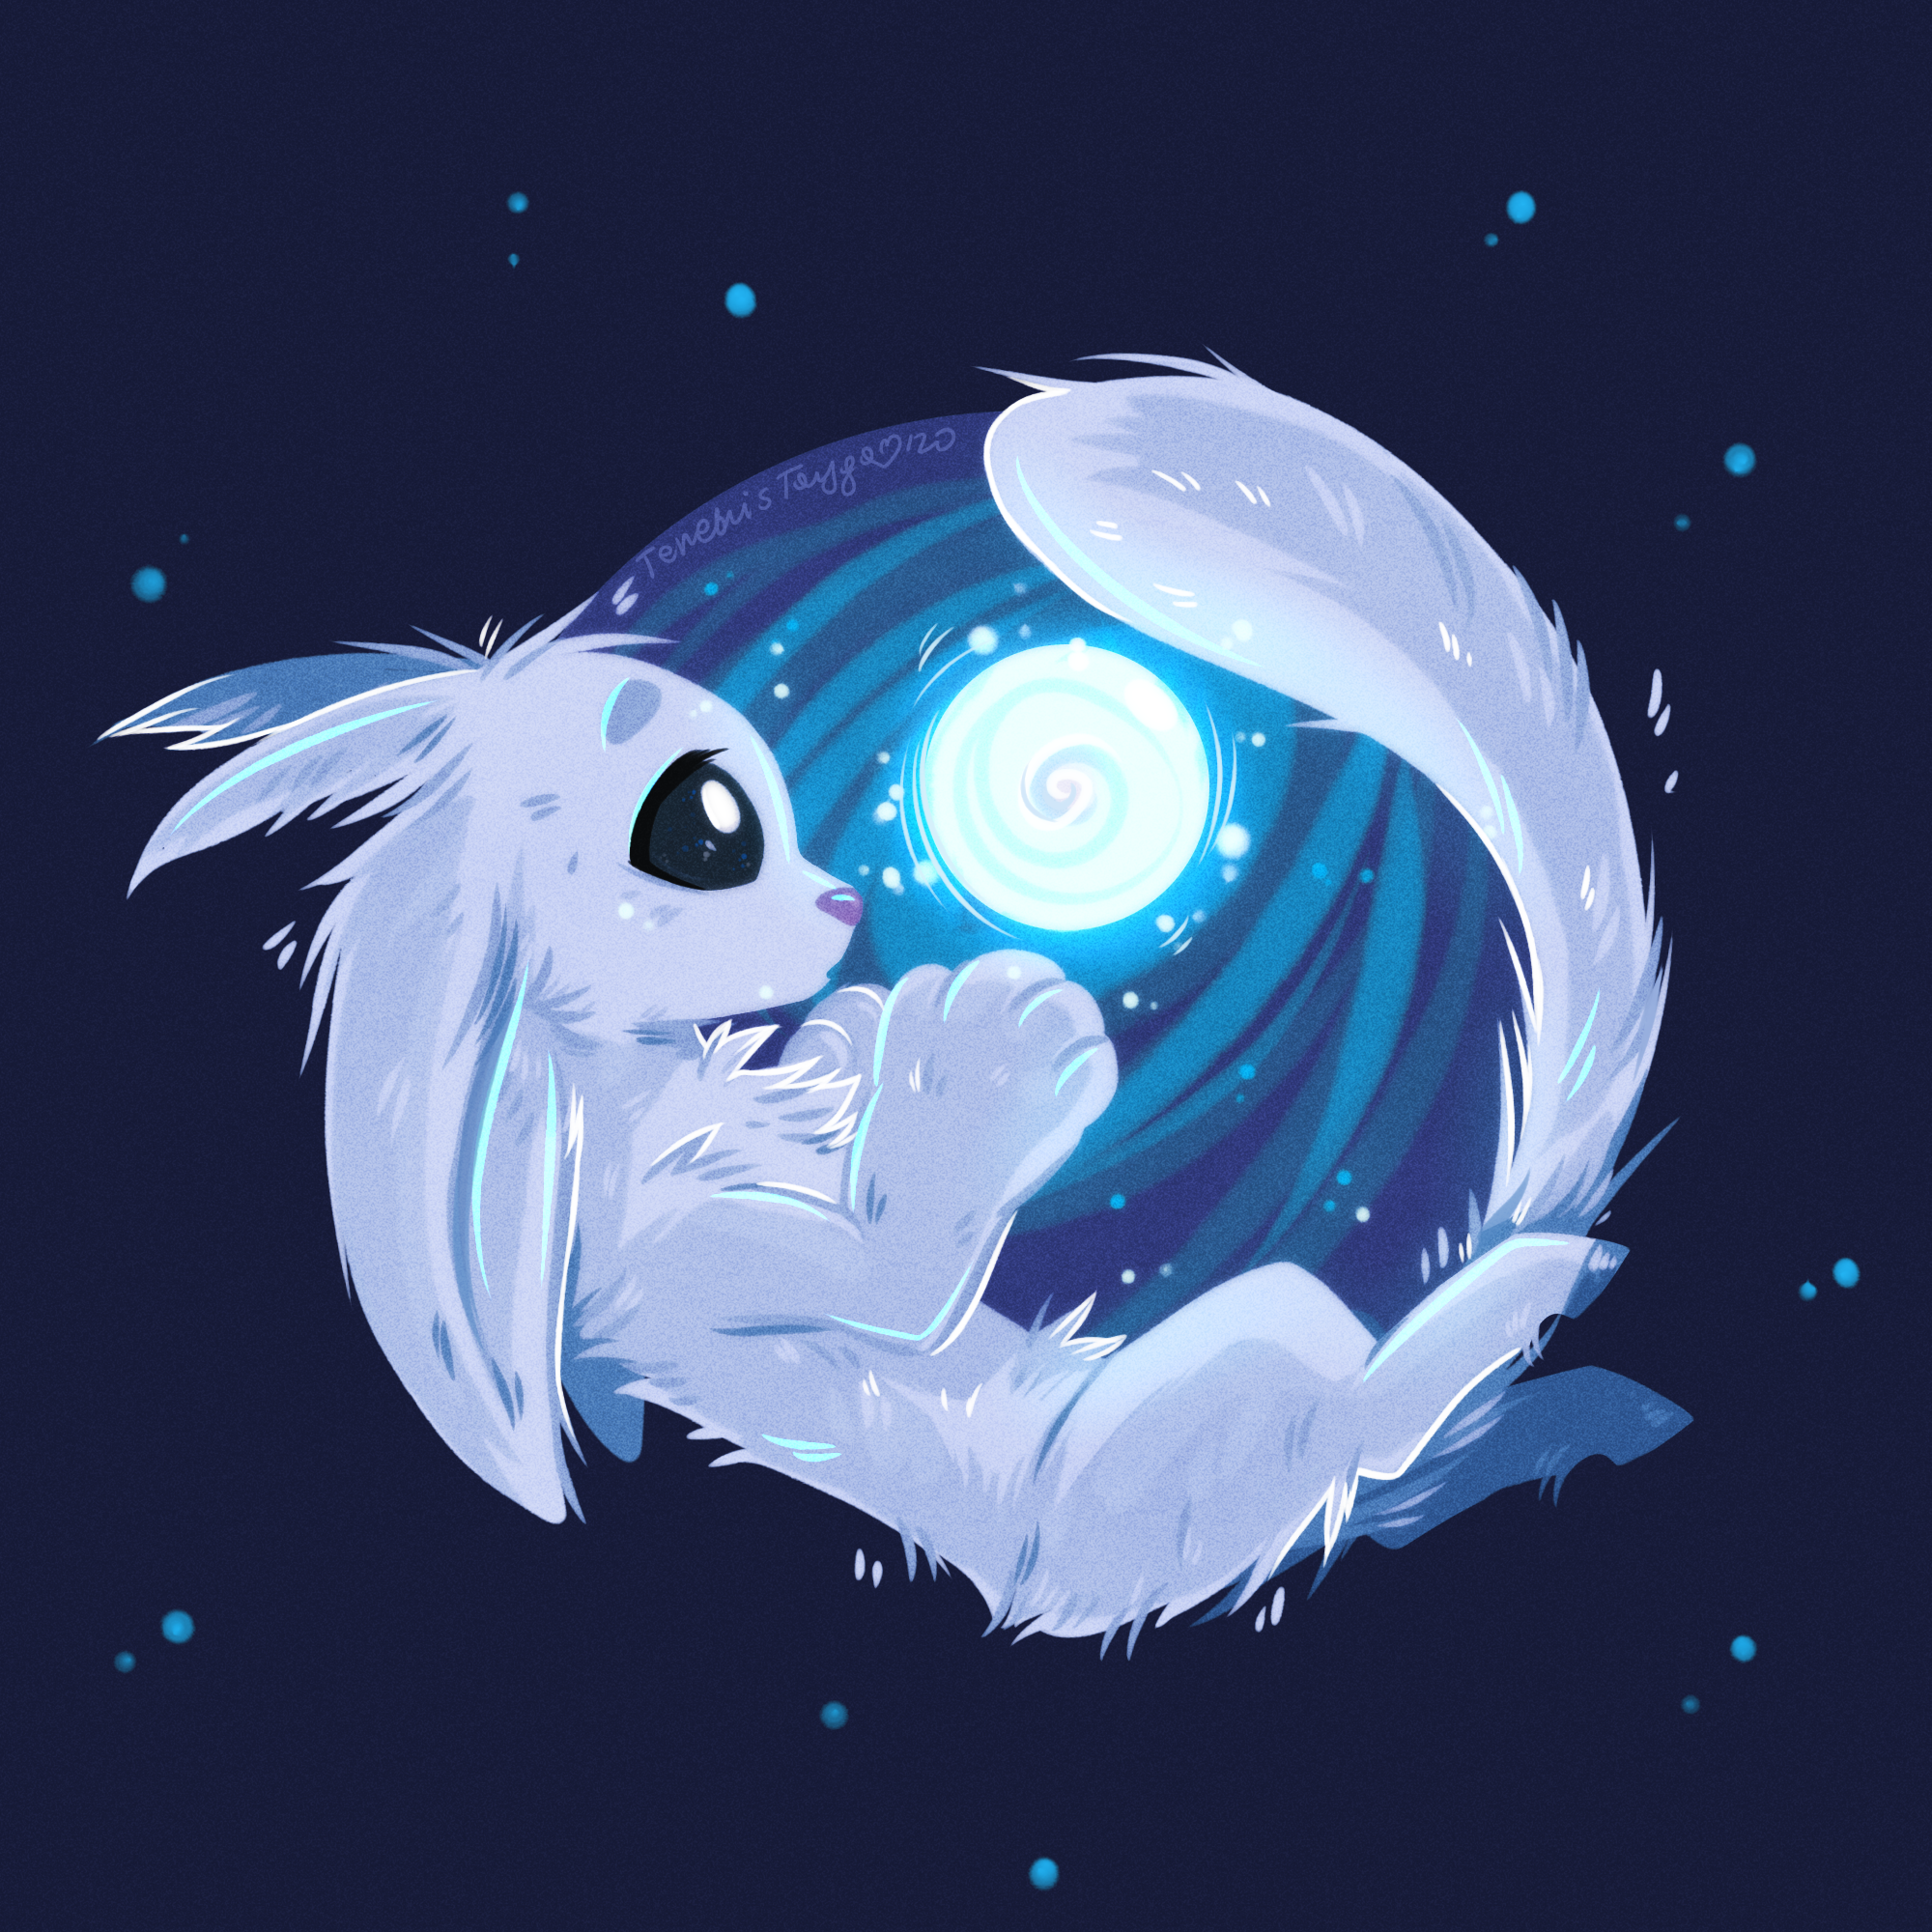 Fanart Ori And Sein By Tenebristayga On Deviantart In 2020 Game Art Forest Drawing Art